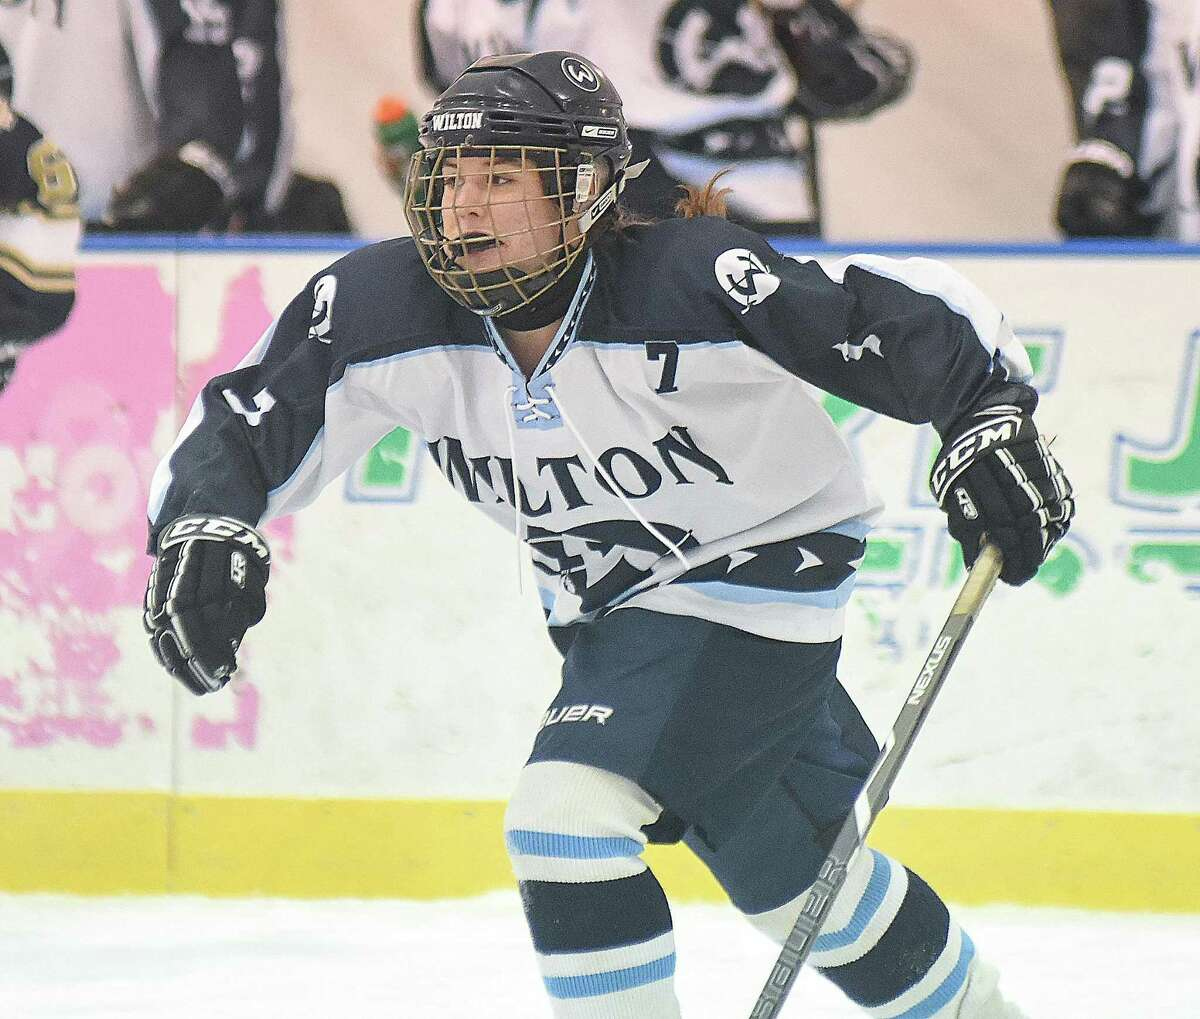 Molly Thomas of the Wilton girls hockey team skates up ice during her team's season-opening game against Notre Dame-Fairfield last weekend. 12-15-16